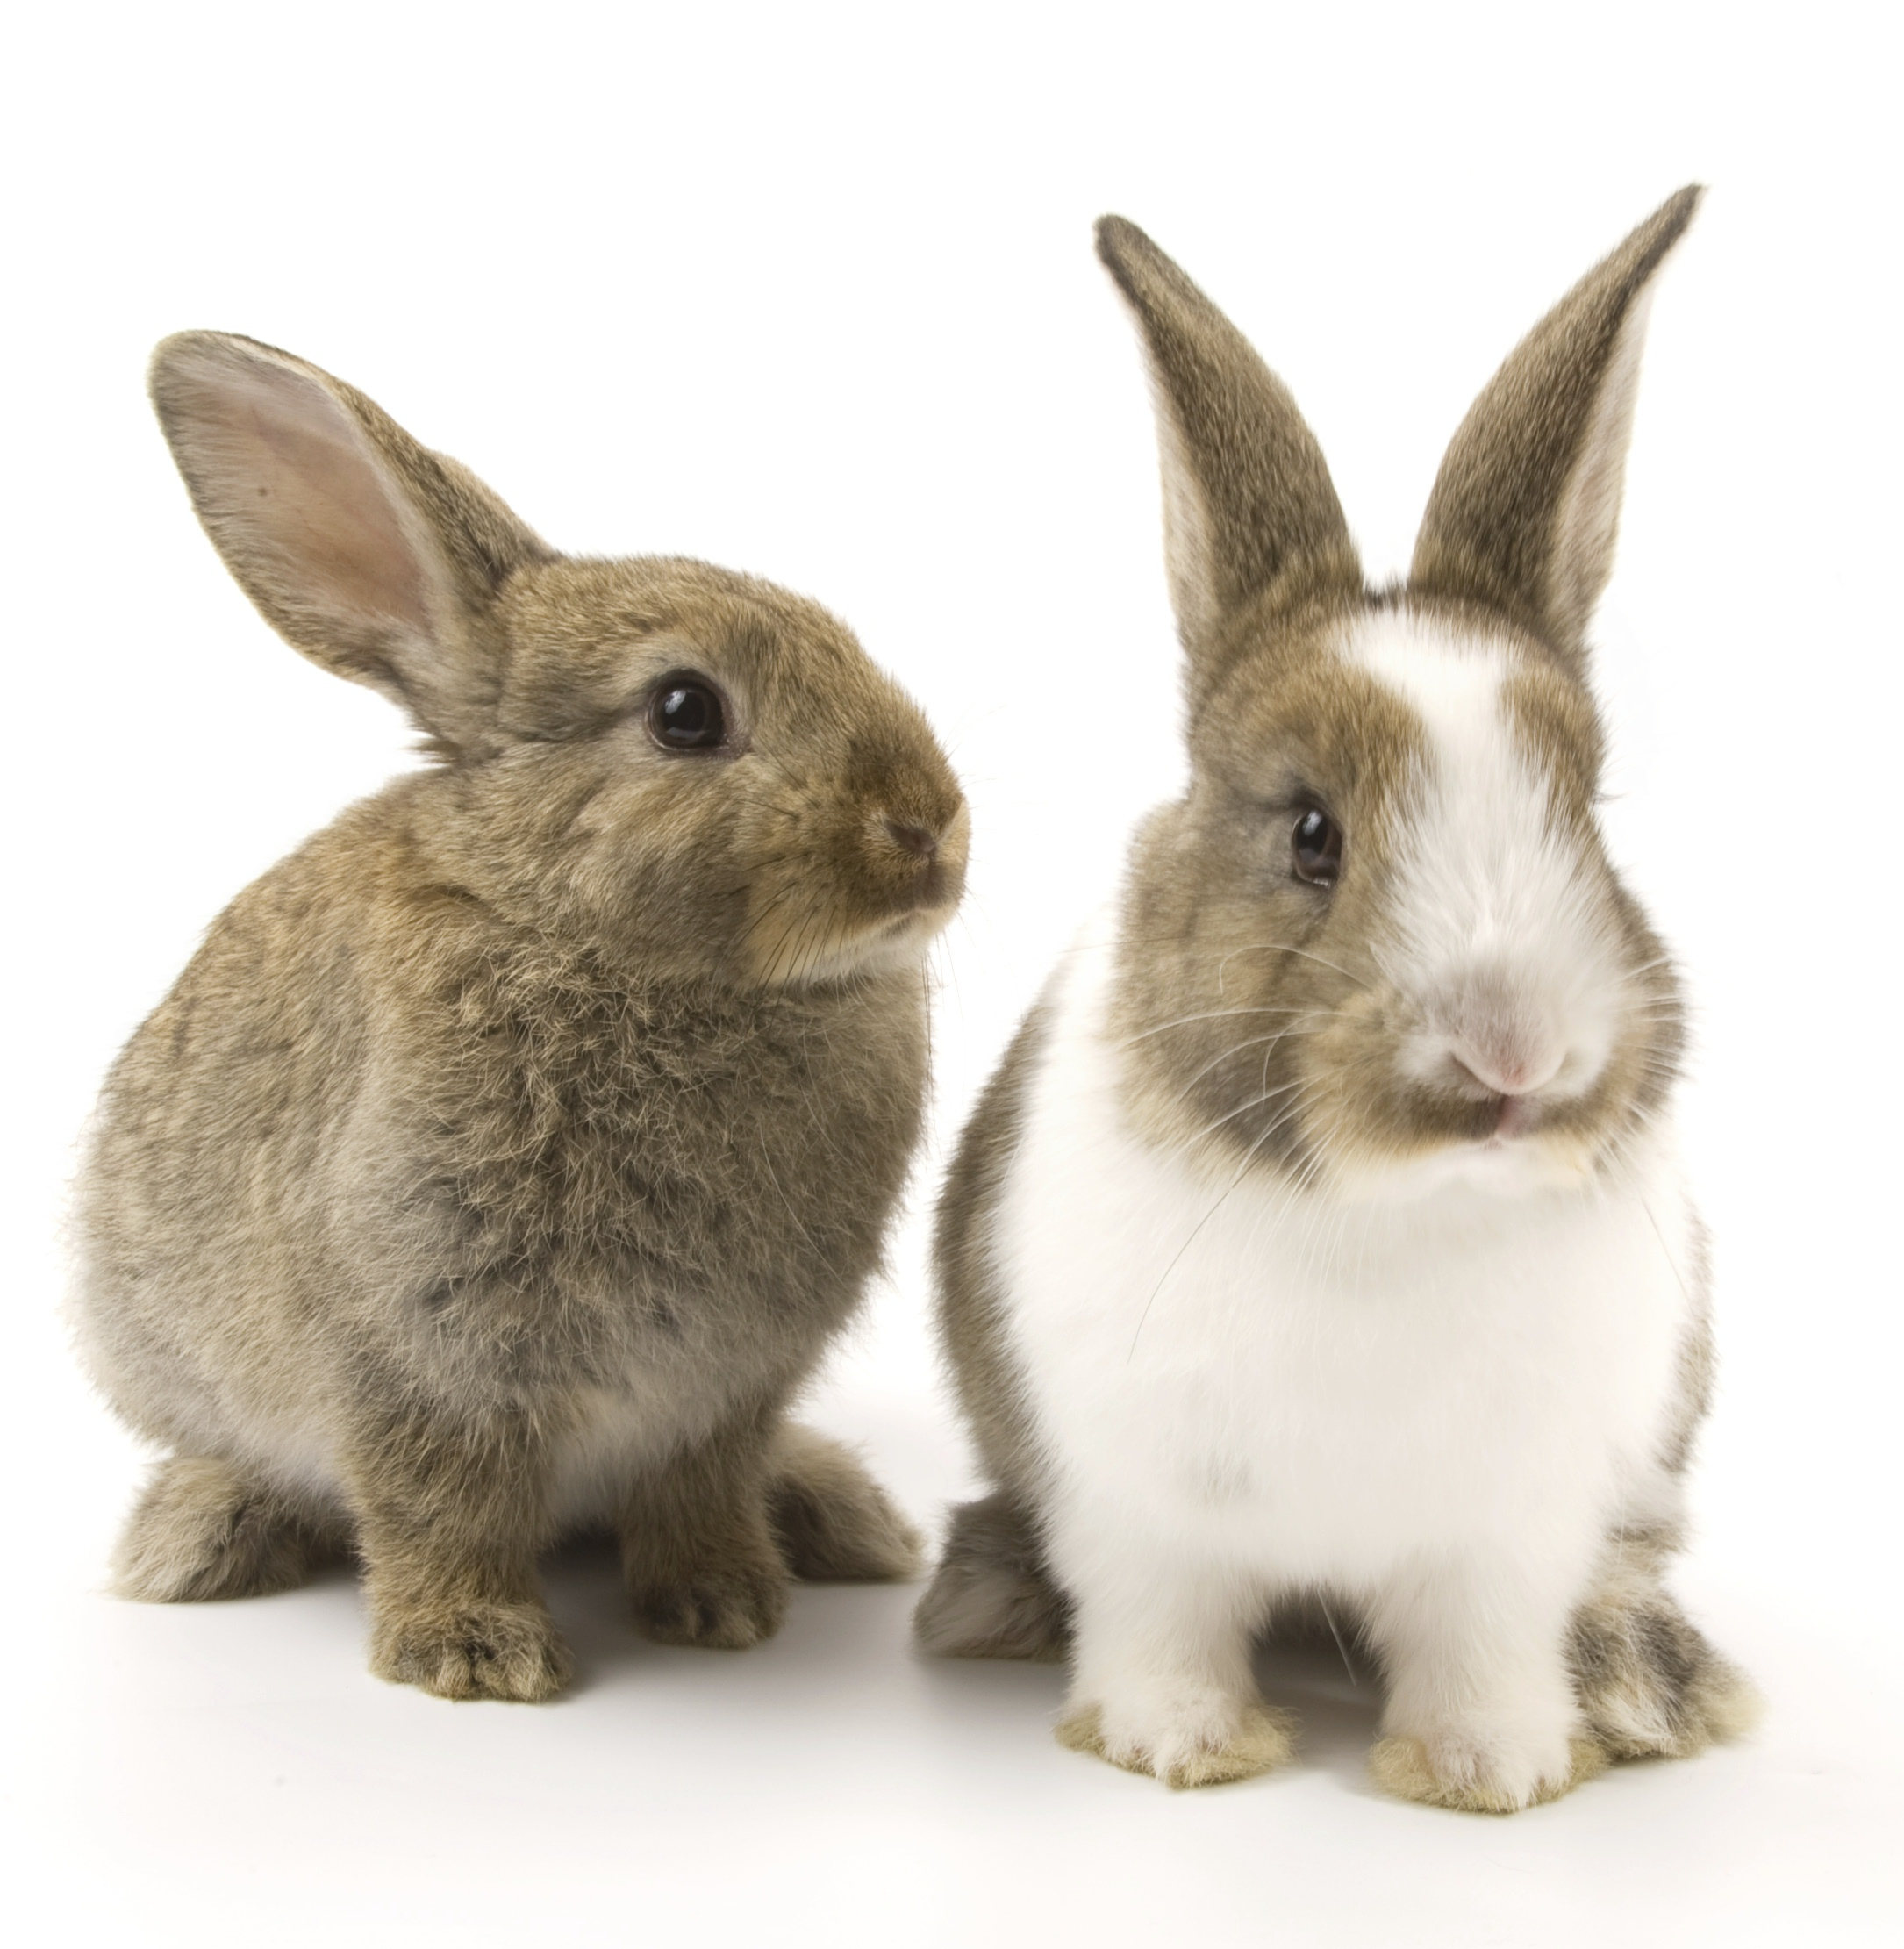 rabbits_pair_separated_cropped.jpg